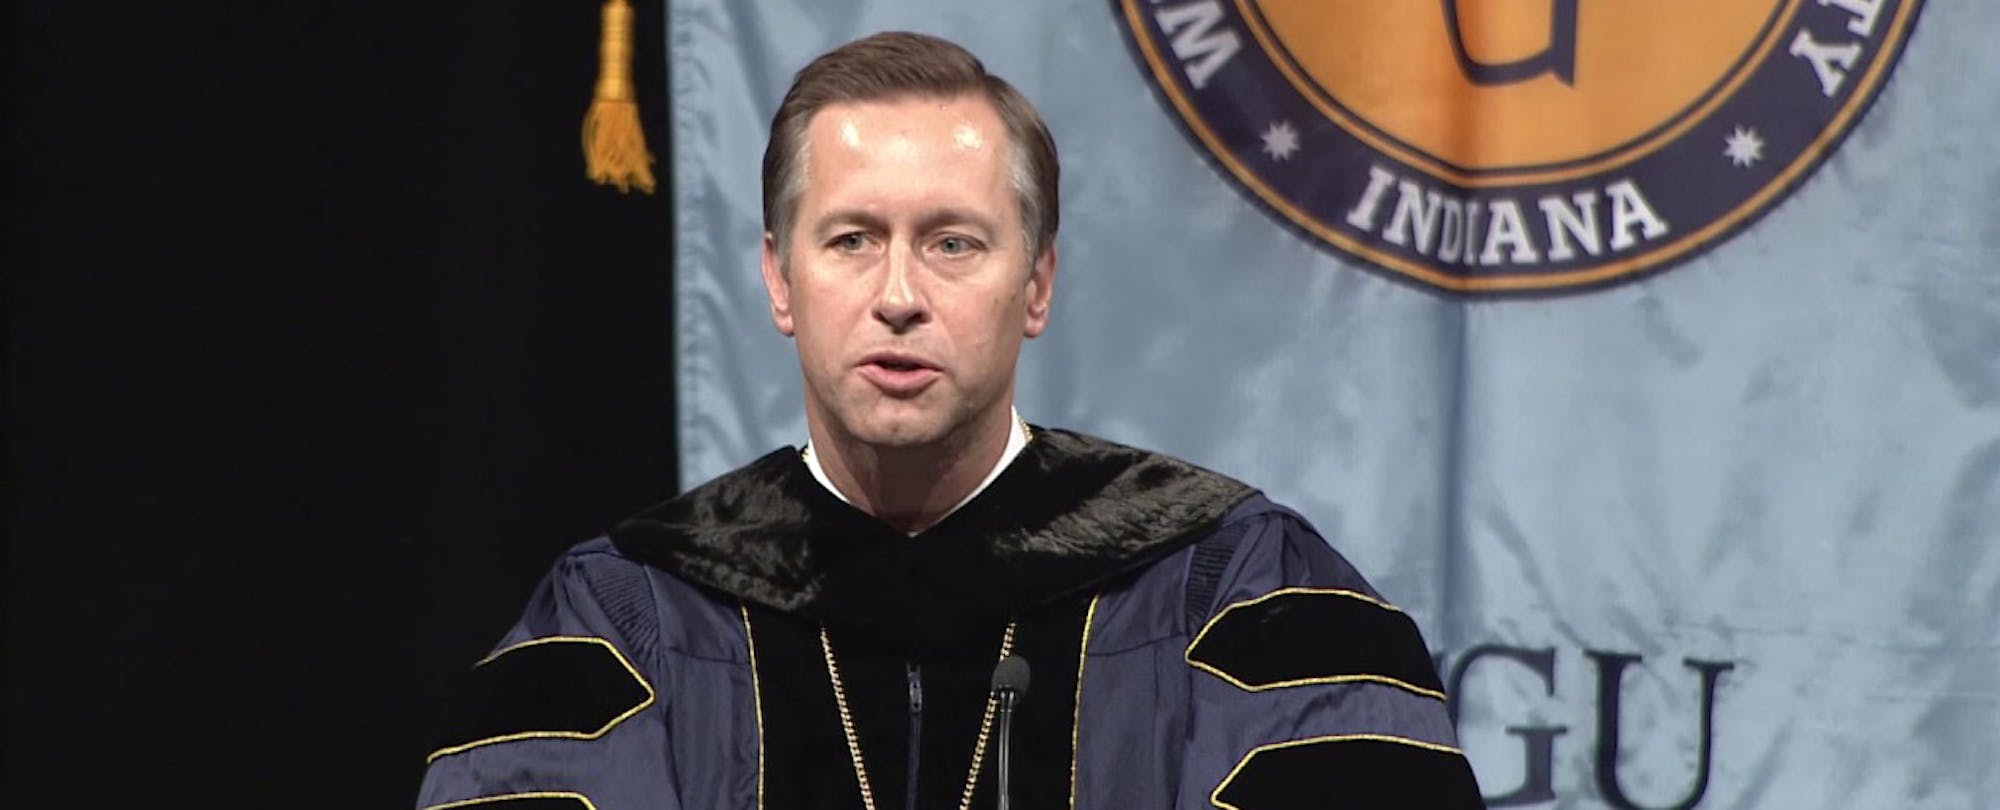 WGU President Scott Pulsipher on Bringing Customer-Centric Culture to Universities